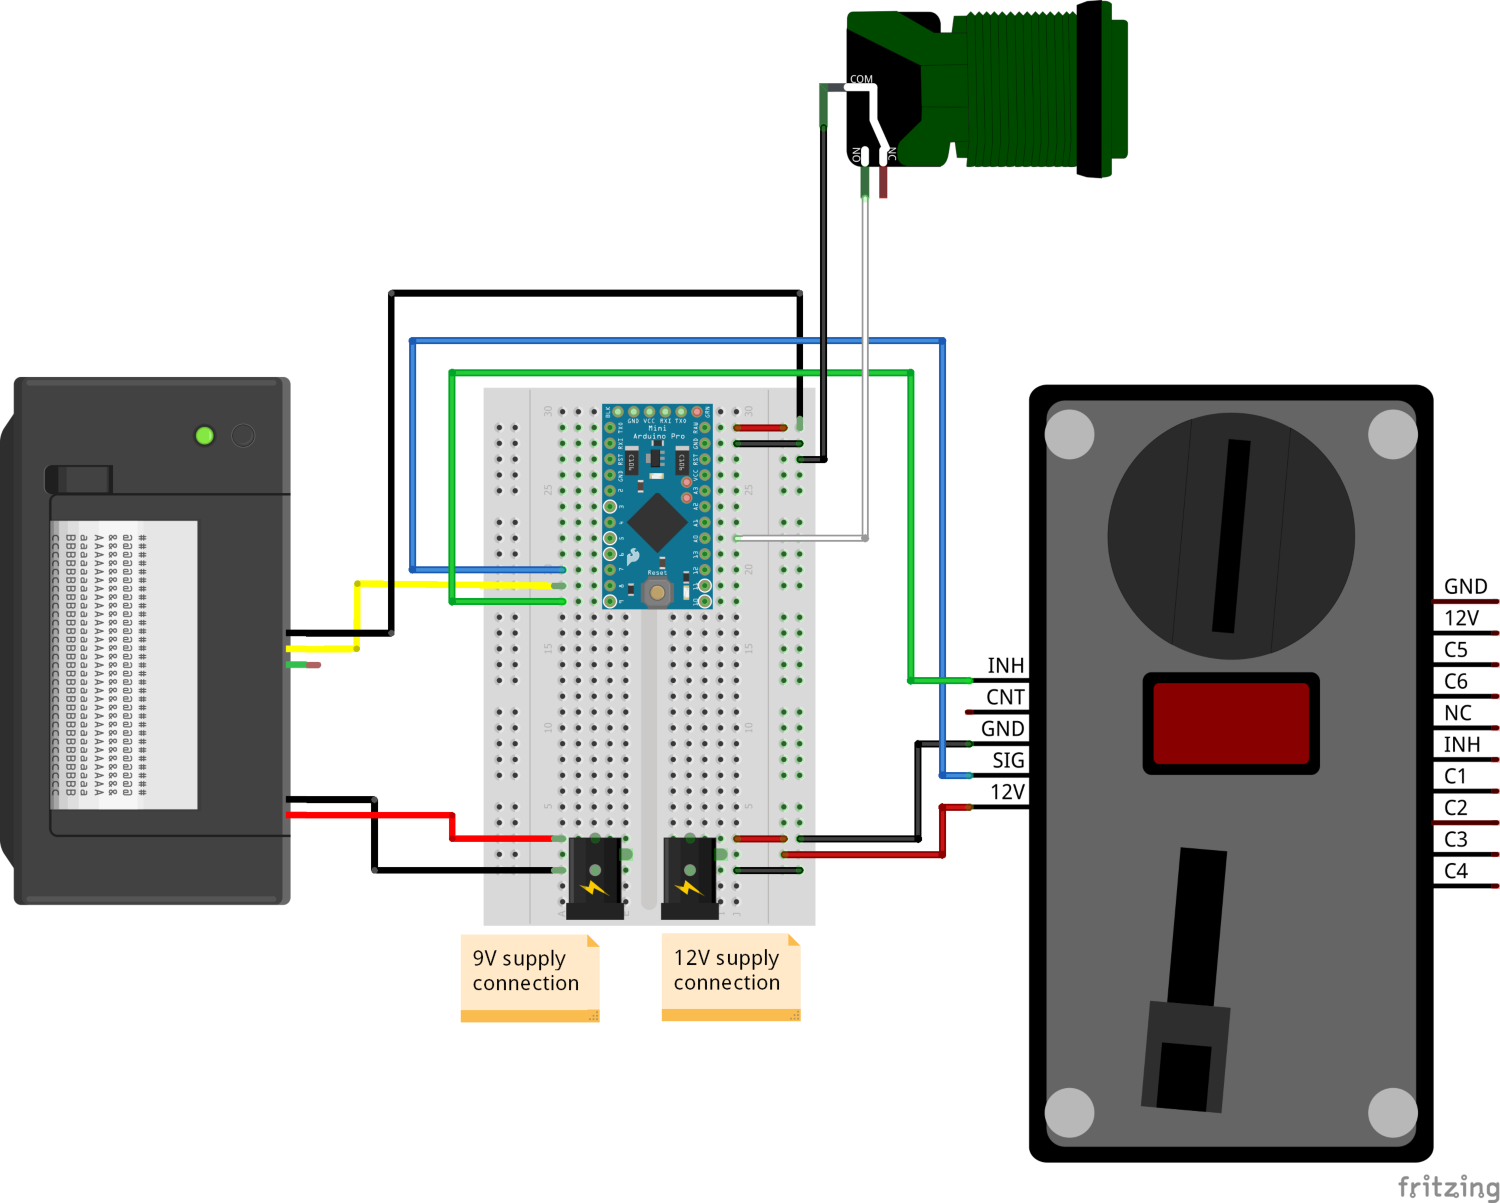 Thermal Printer Com 10438 Sparkfun Electronics Turn Signal Wiring Diagram On Inline Dimmer Switch And Coin Acceptor Fritzing Example